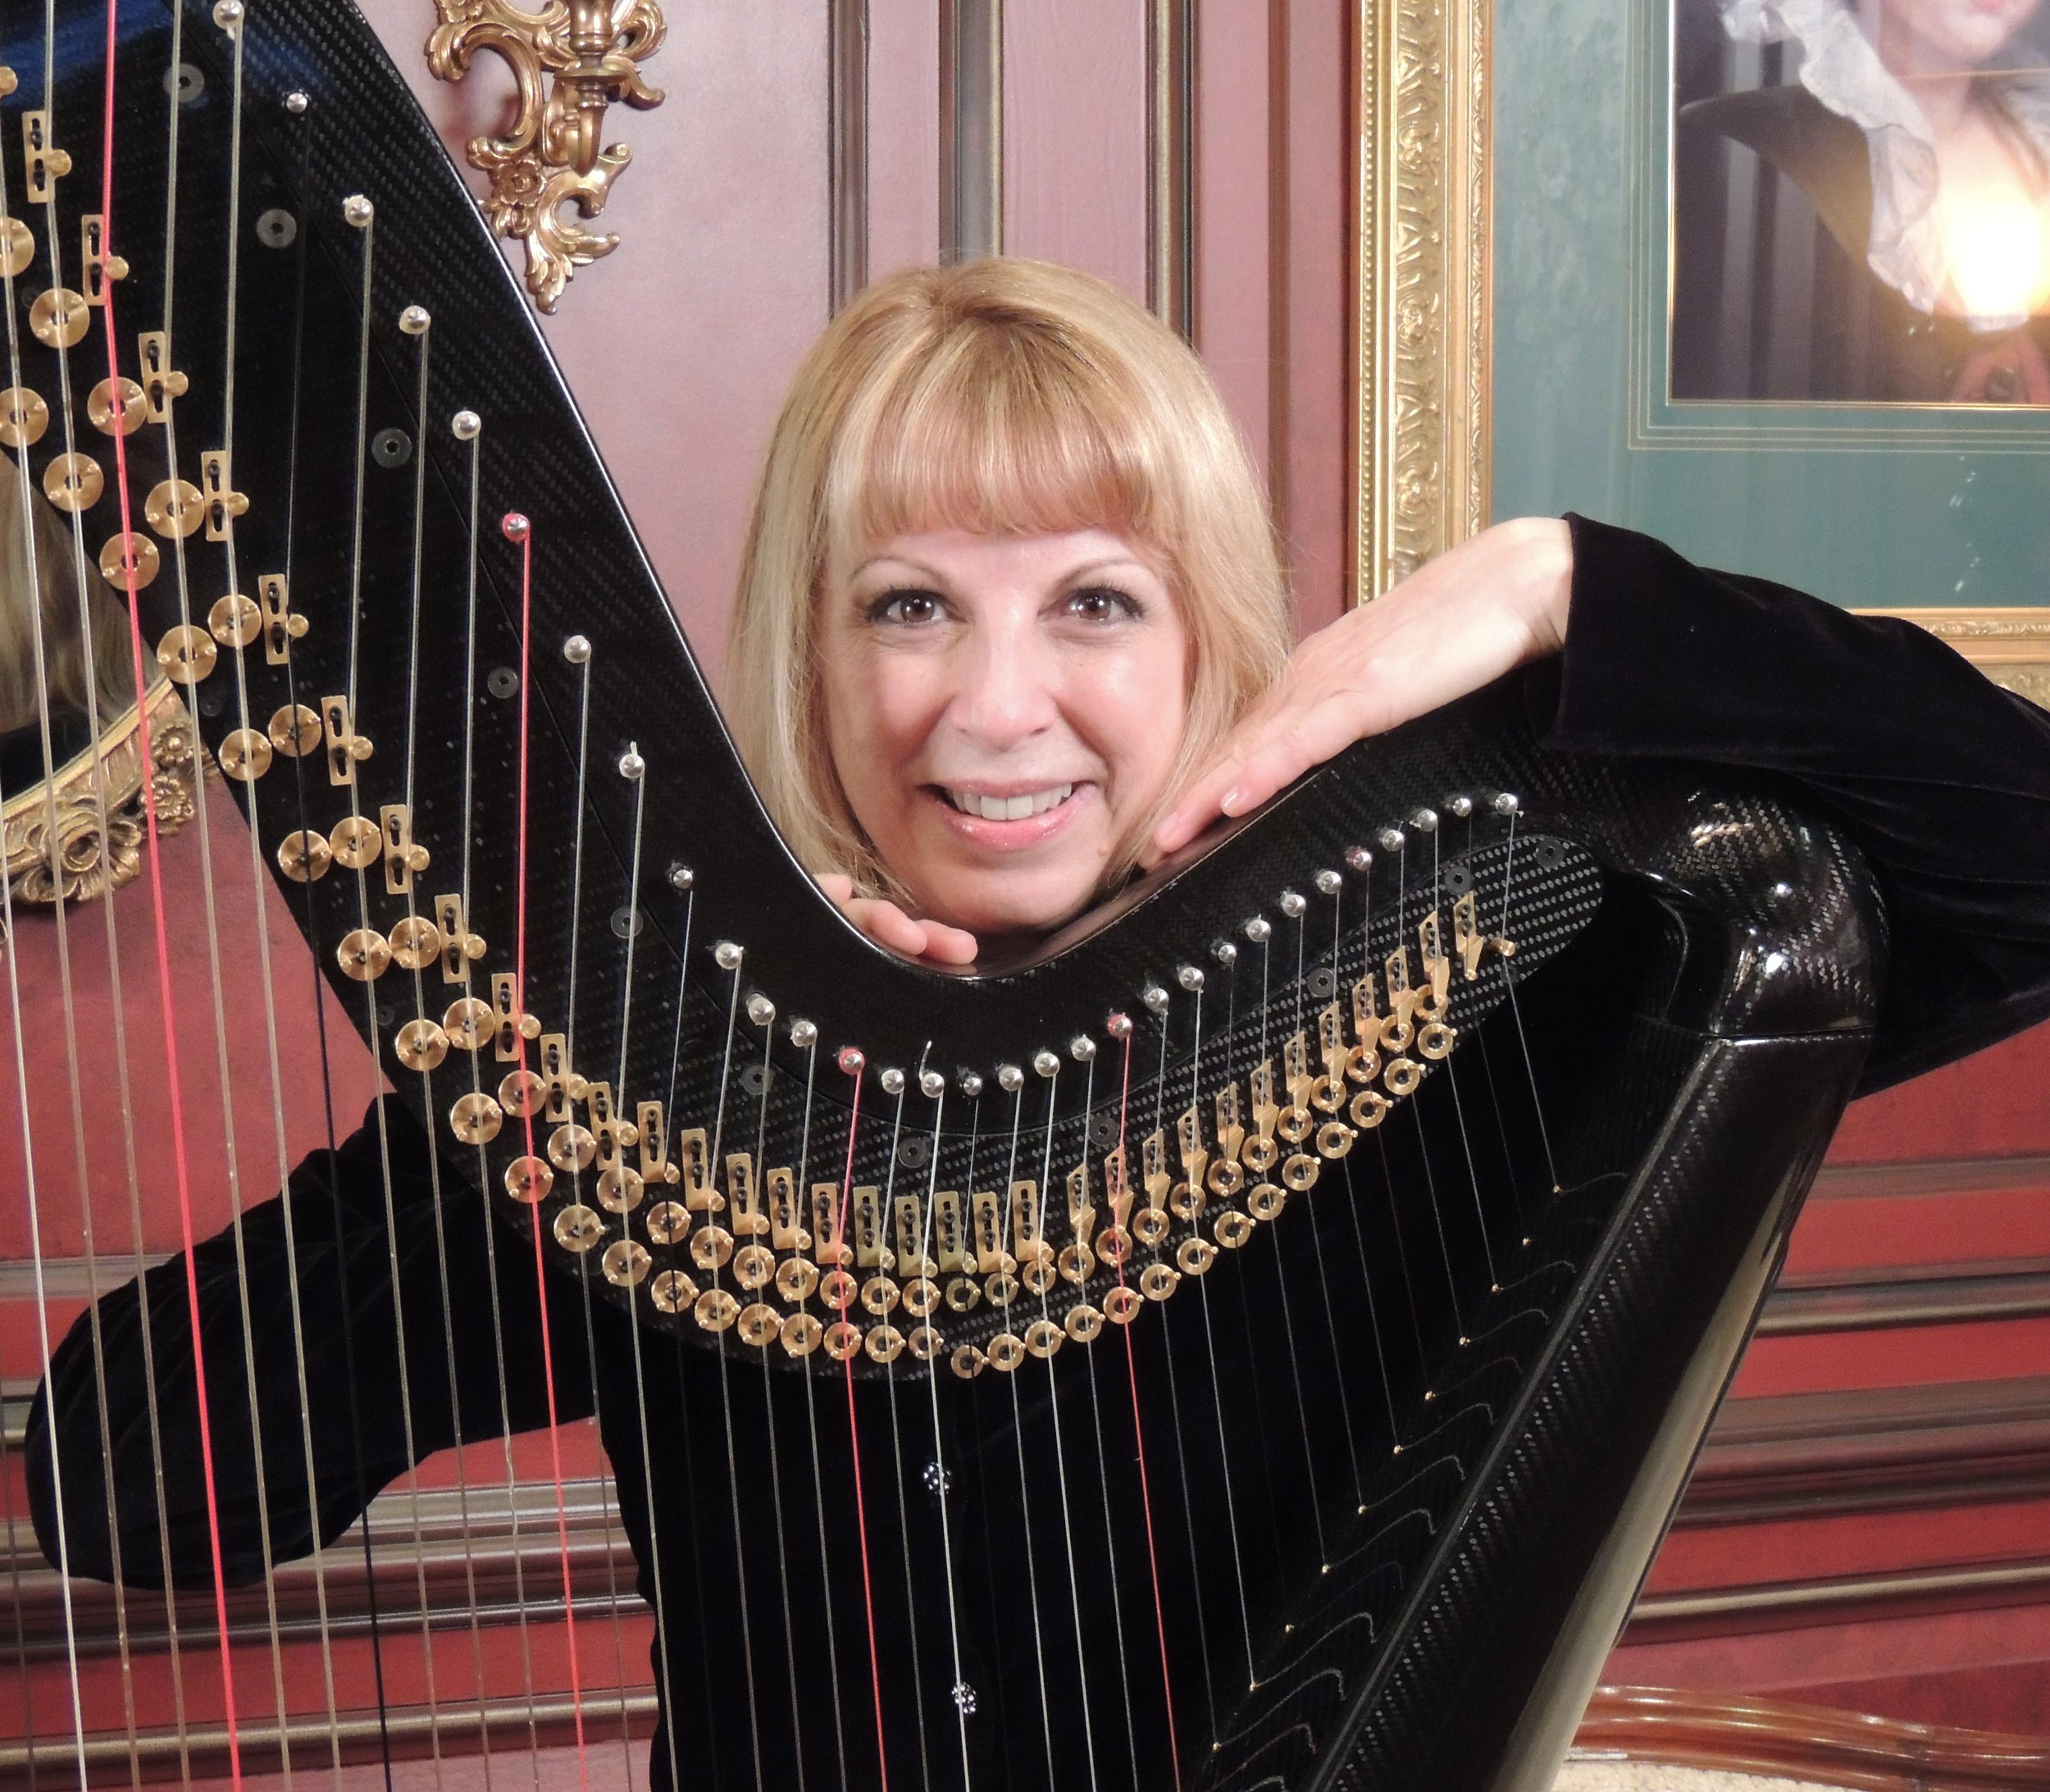 Harpist - Classical, Pop, Broadway, Jazz, World Music and Standardsfor more information call (267)577-2222 or email dco@dcoevents.com